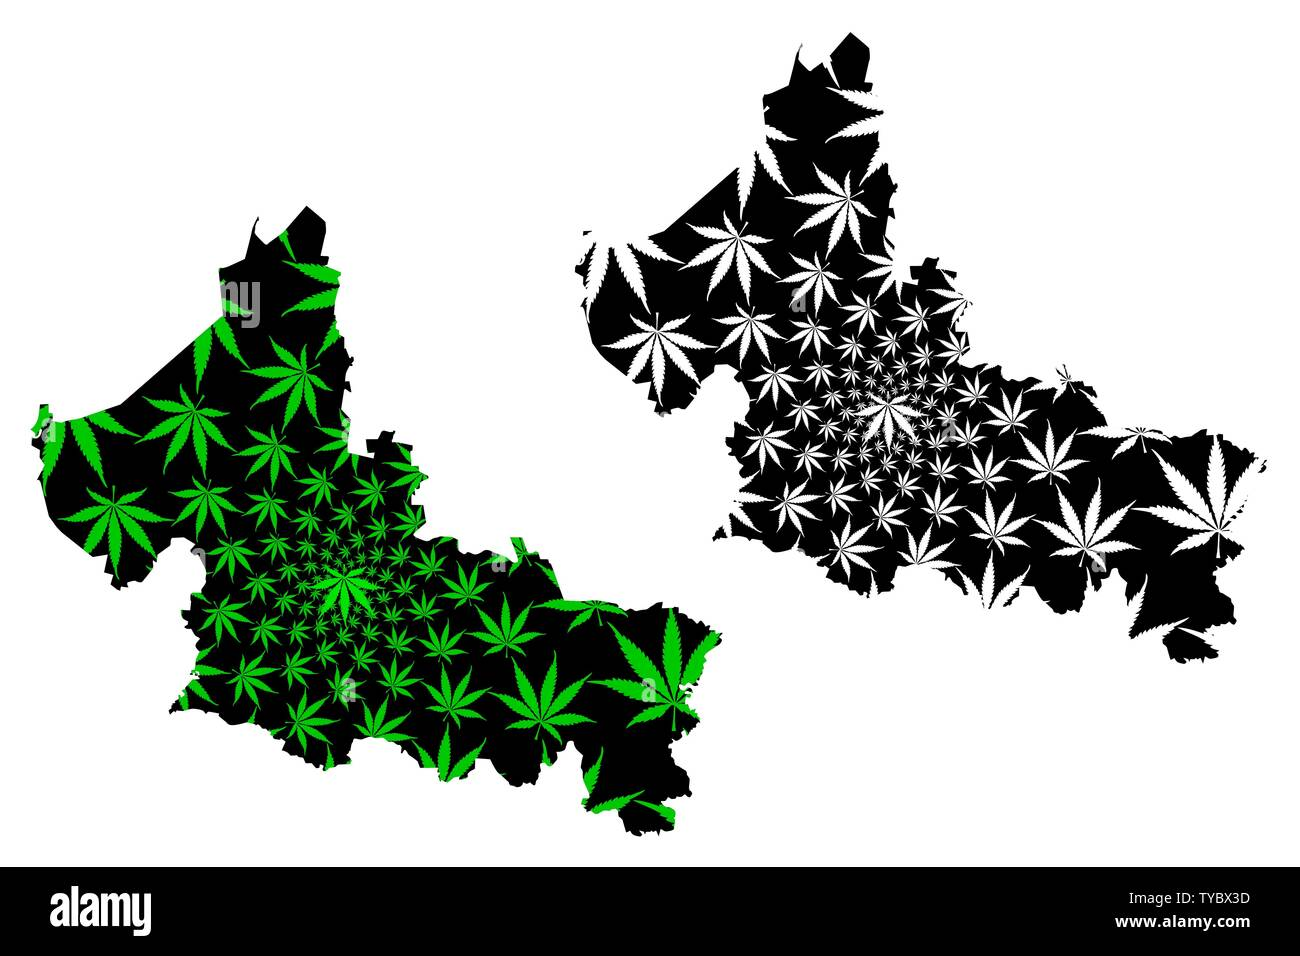 San Luis Potosi (United Mexican States, Mexico) map is designed cannabis leaf green and black, Free and Sovereign State of San Luis Potosí map made of - Stock Image